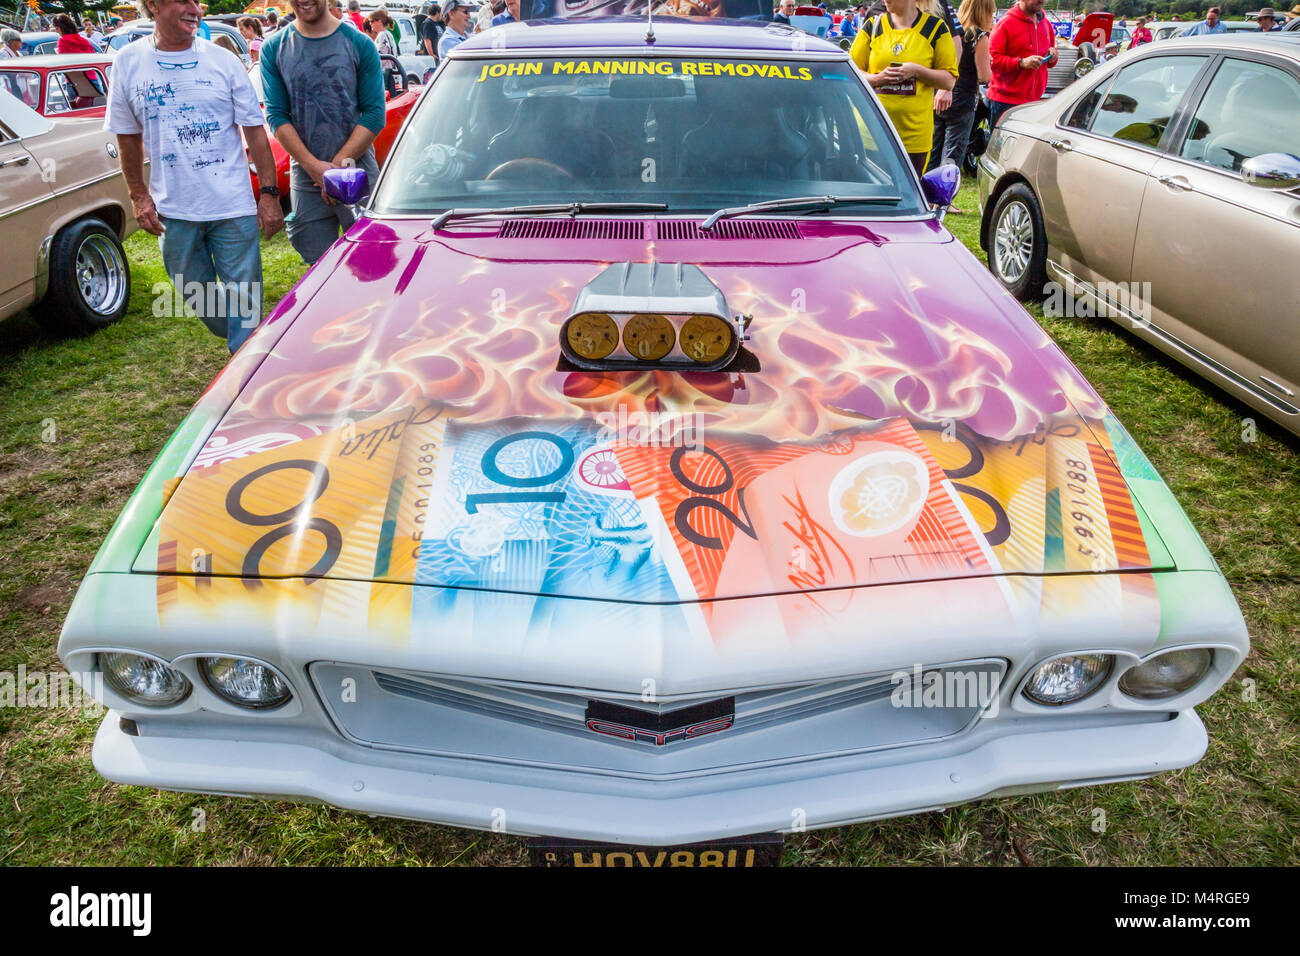 Australia, New South Wales, Central Coast, The Entrance, fancy paintwork on the bonnet of a Holden Commodore HSV - Stock Image